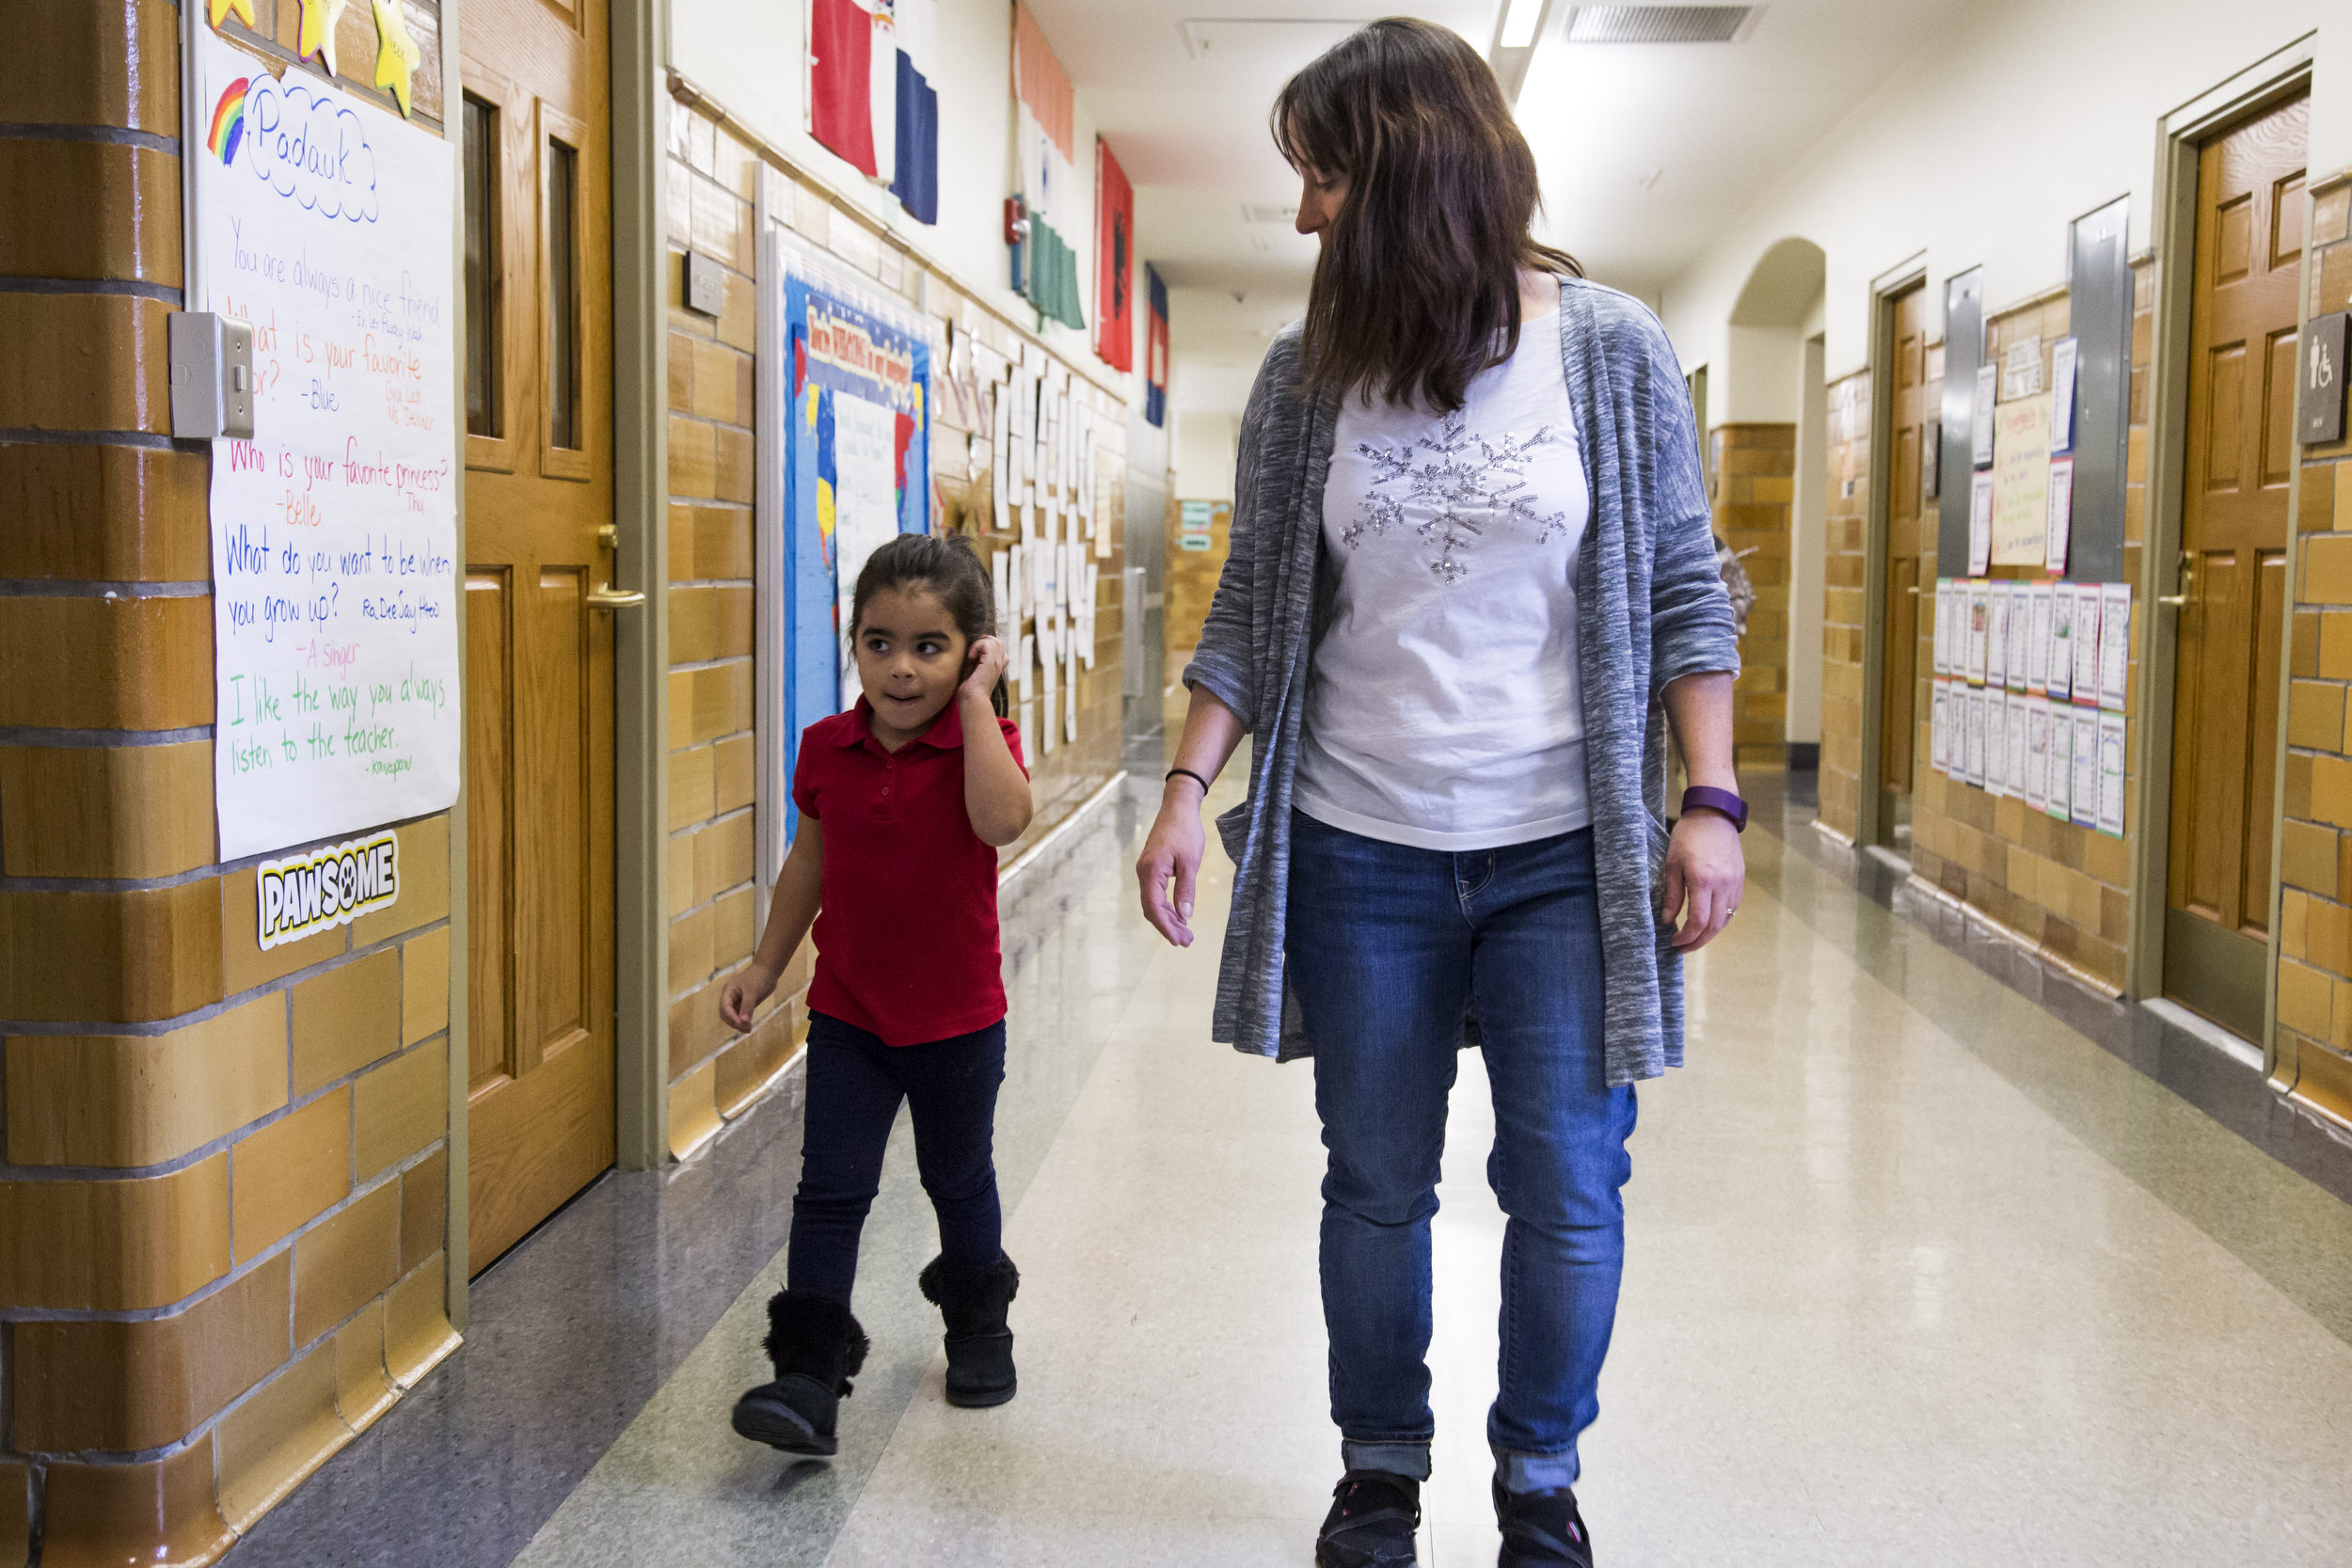 Zoe Vega, left, walks with Christine Herne to the cafeteria.The class prefers to eat in the cafeteria over their own classroom.